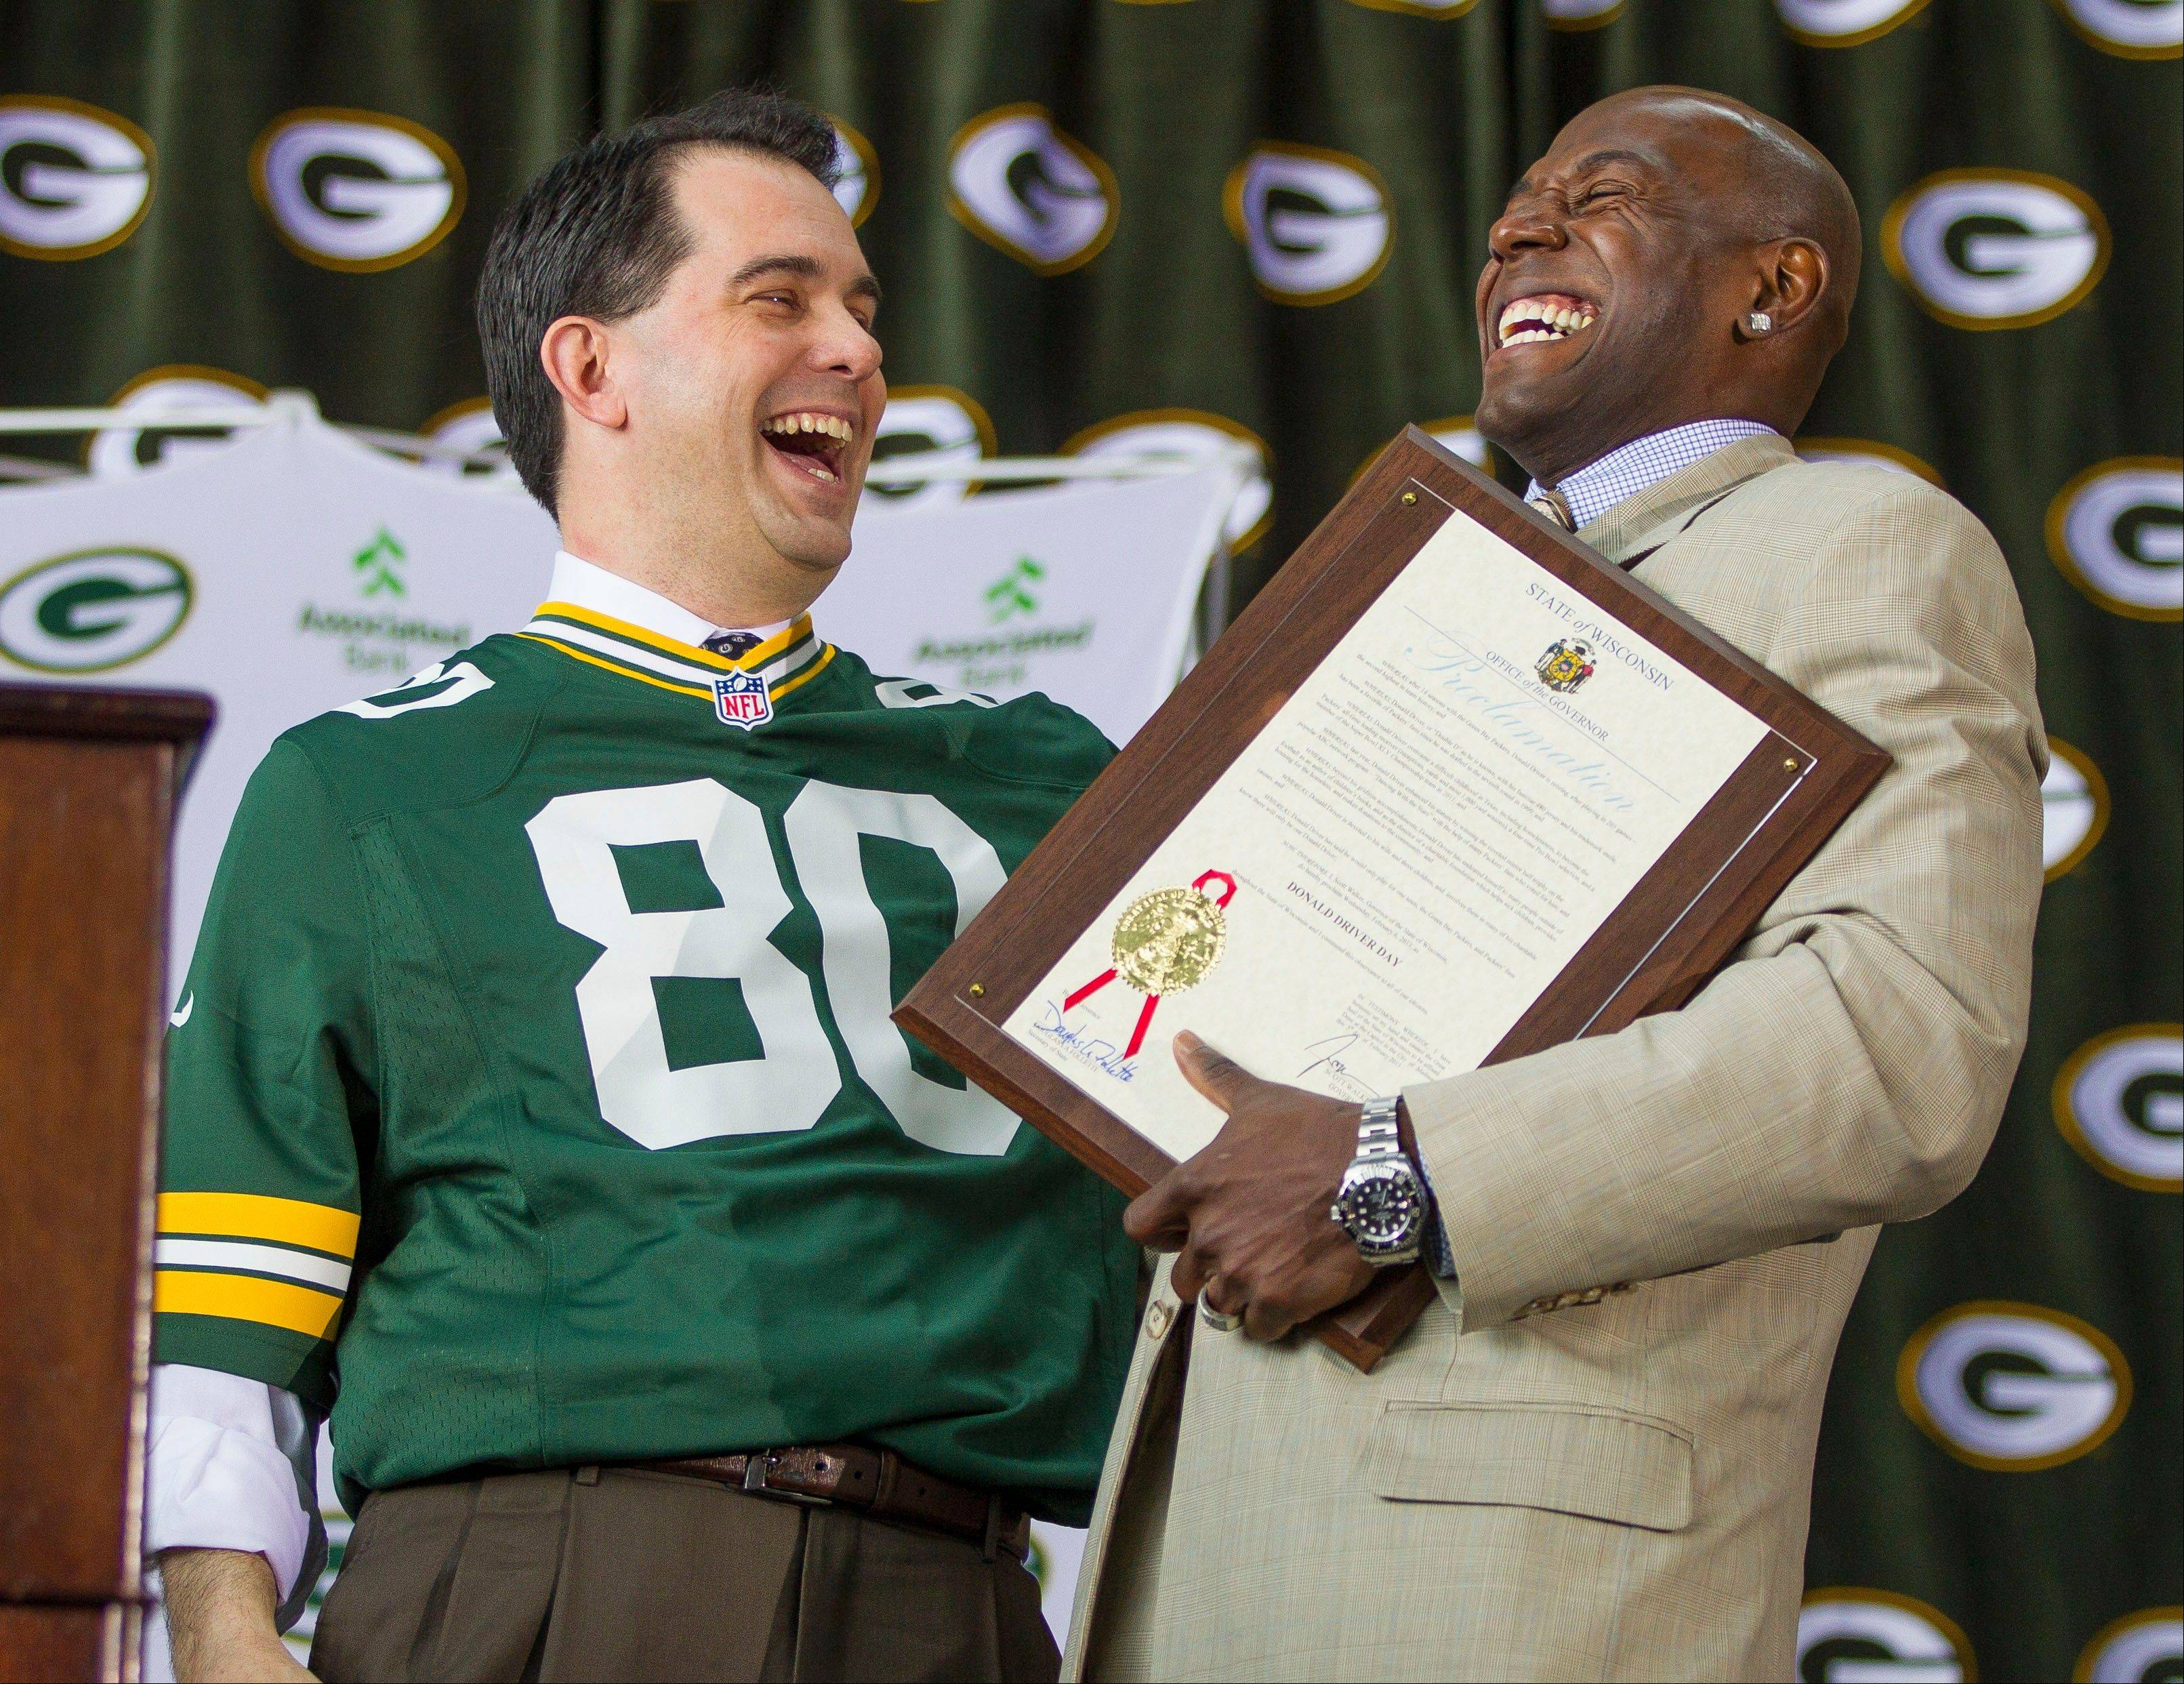 Green Packers all time leading receiver, Donald Driver, right, shares a laugh with Wisconsin Governor Scott Walker during Drivers retirement ceremony Wednesday, Feb. 6, 2013 at Lambeau Field in Green Bay, Wis. The governor had proclaimed the day Donald Driver day.